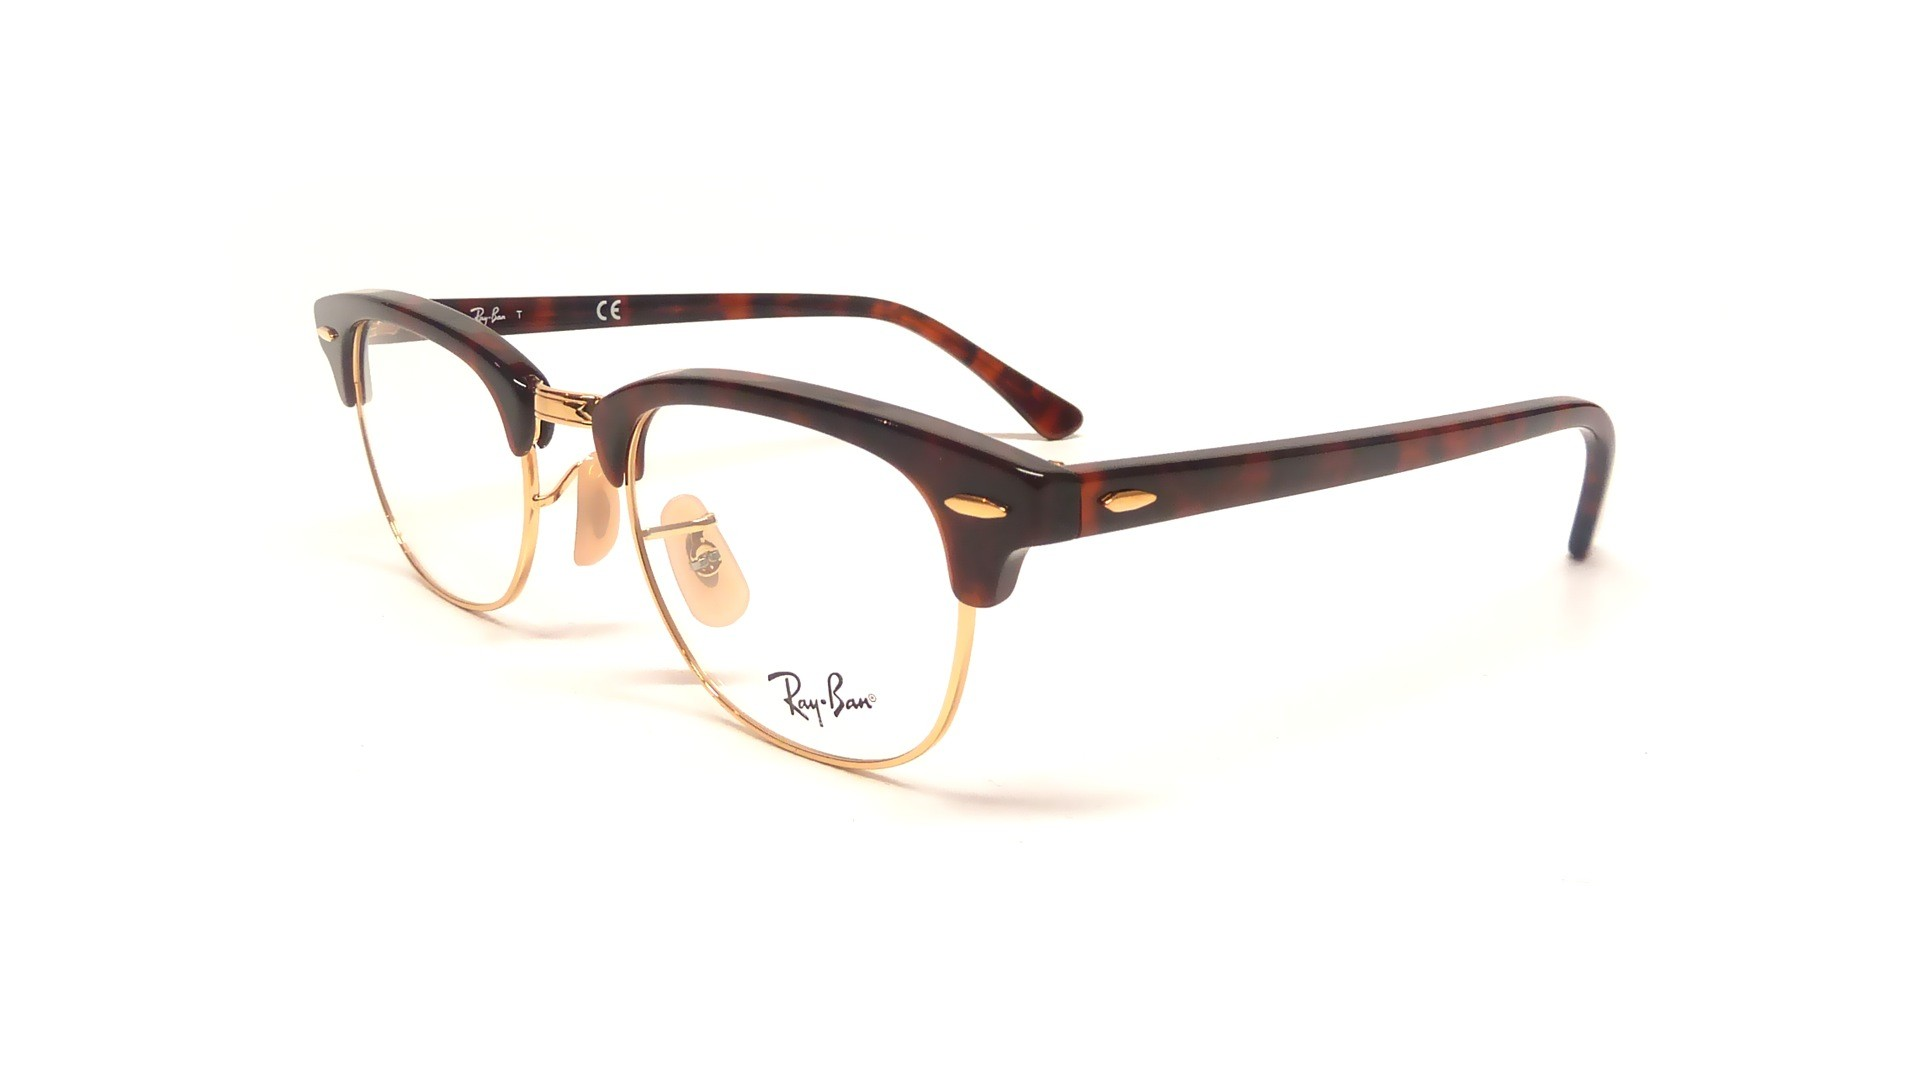 d915a846f17 ray ban prescription glasses clubmaster ray ban gold sunglasses womens